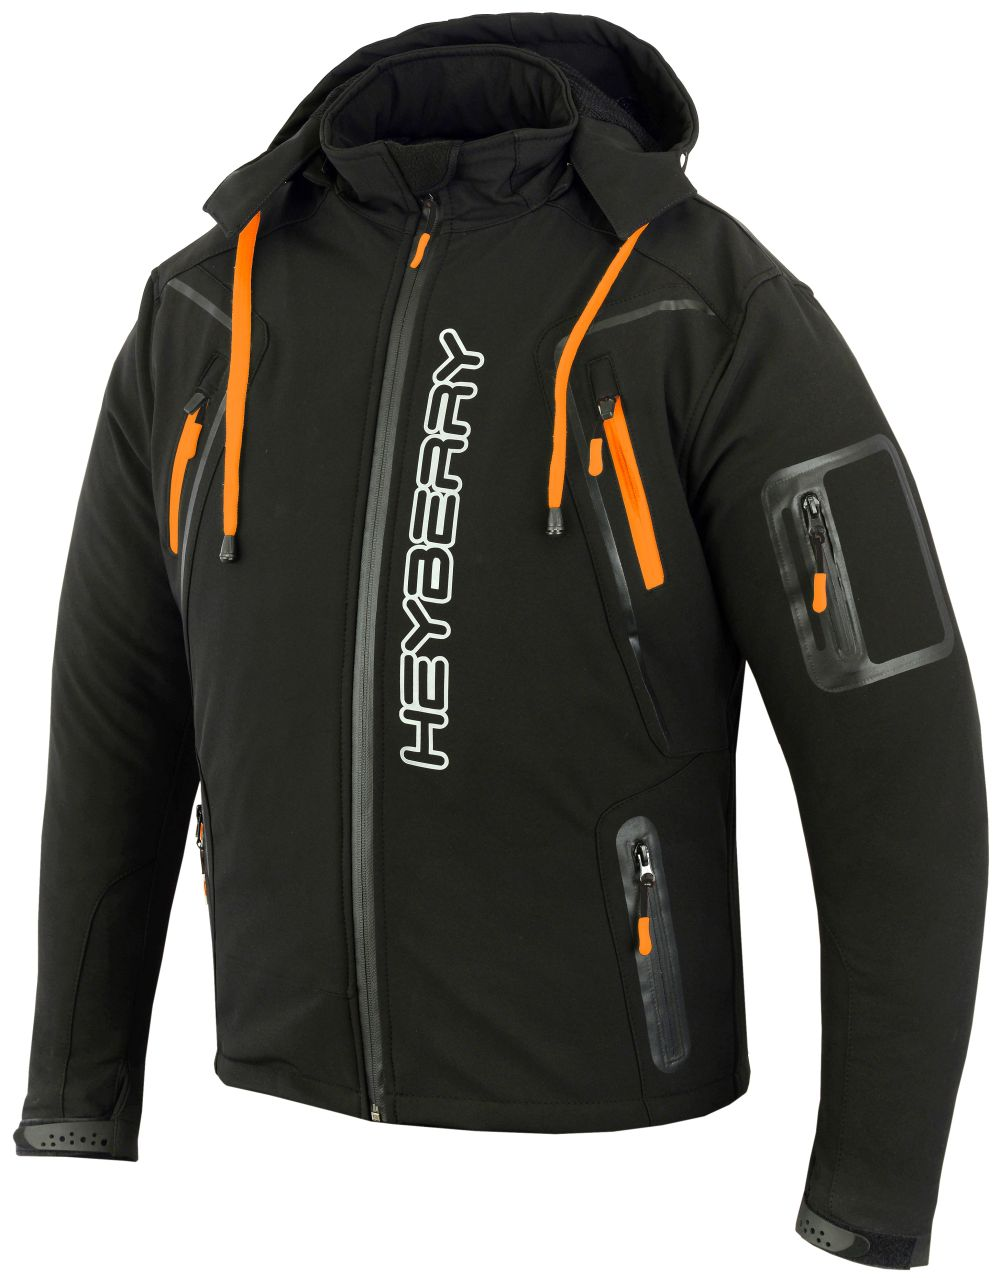 Soft Shell Motorradjacke Heyberry Textil Schwarz/Orange Gr. M L XL XXL 3XL